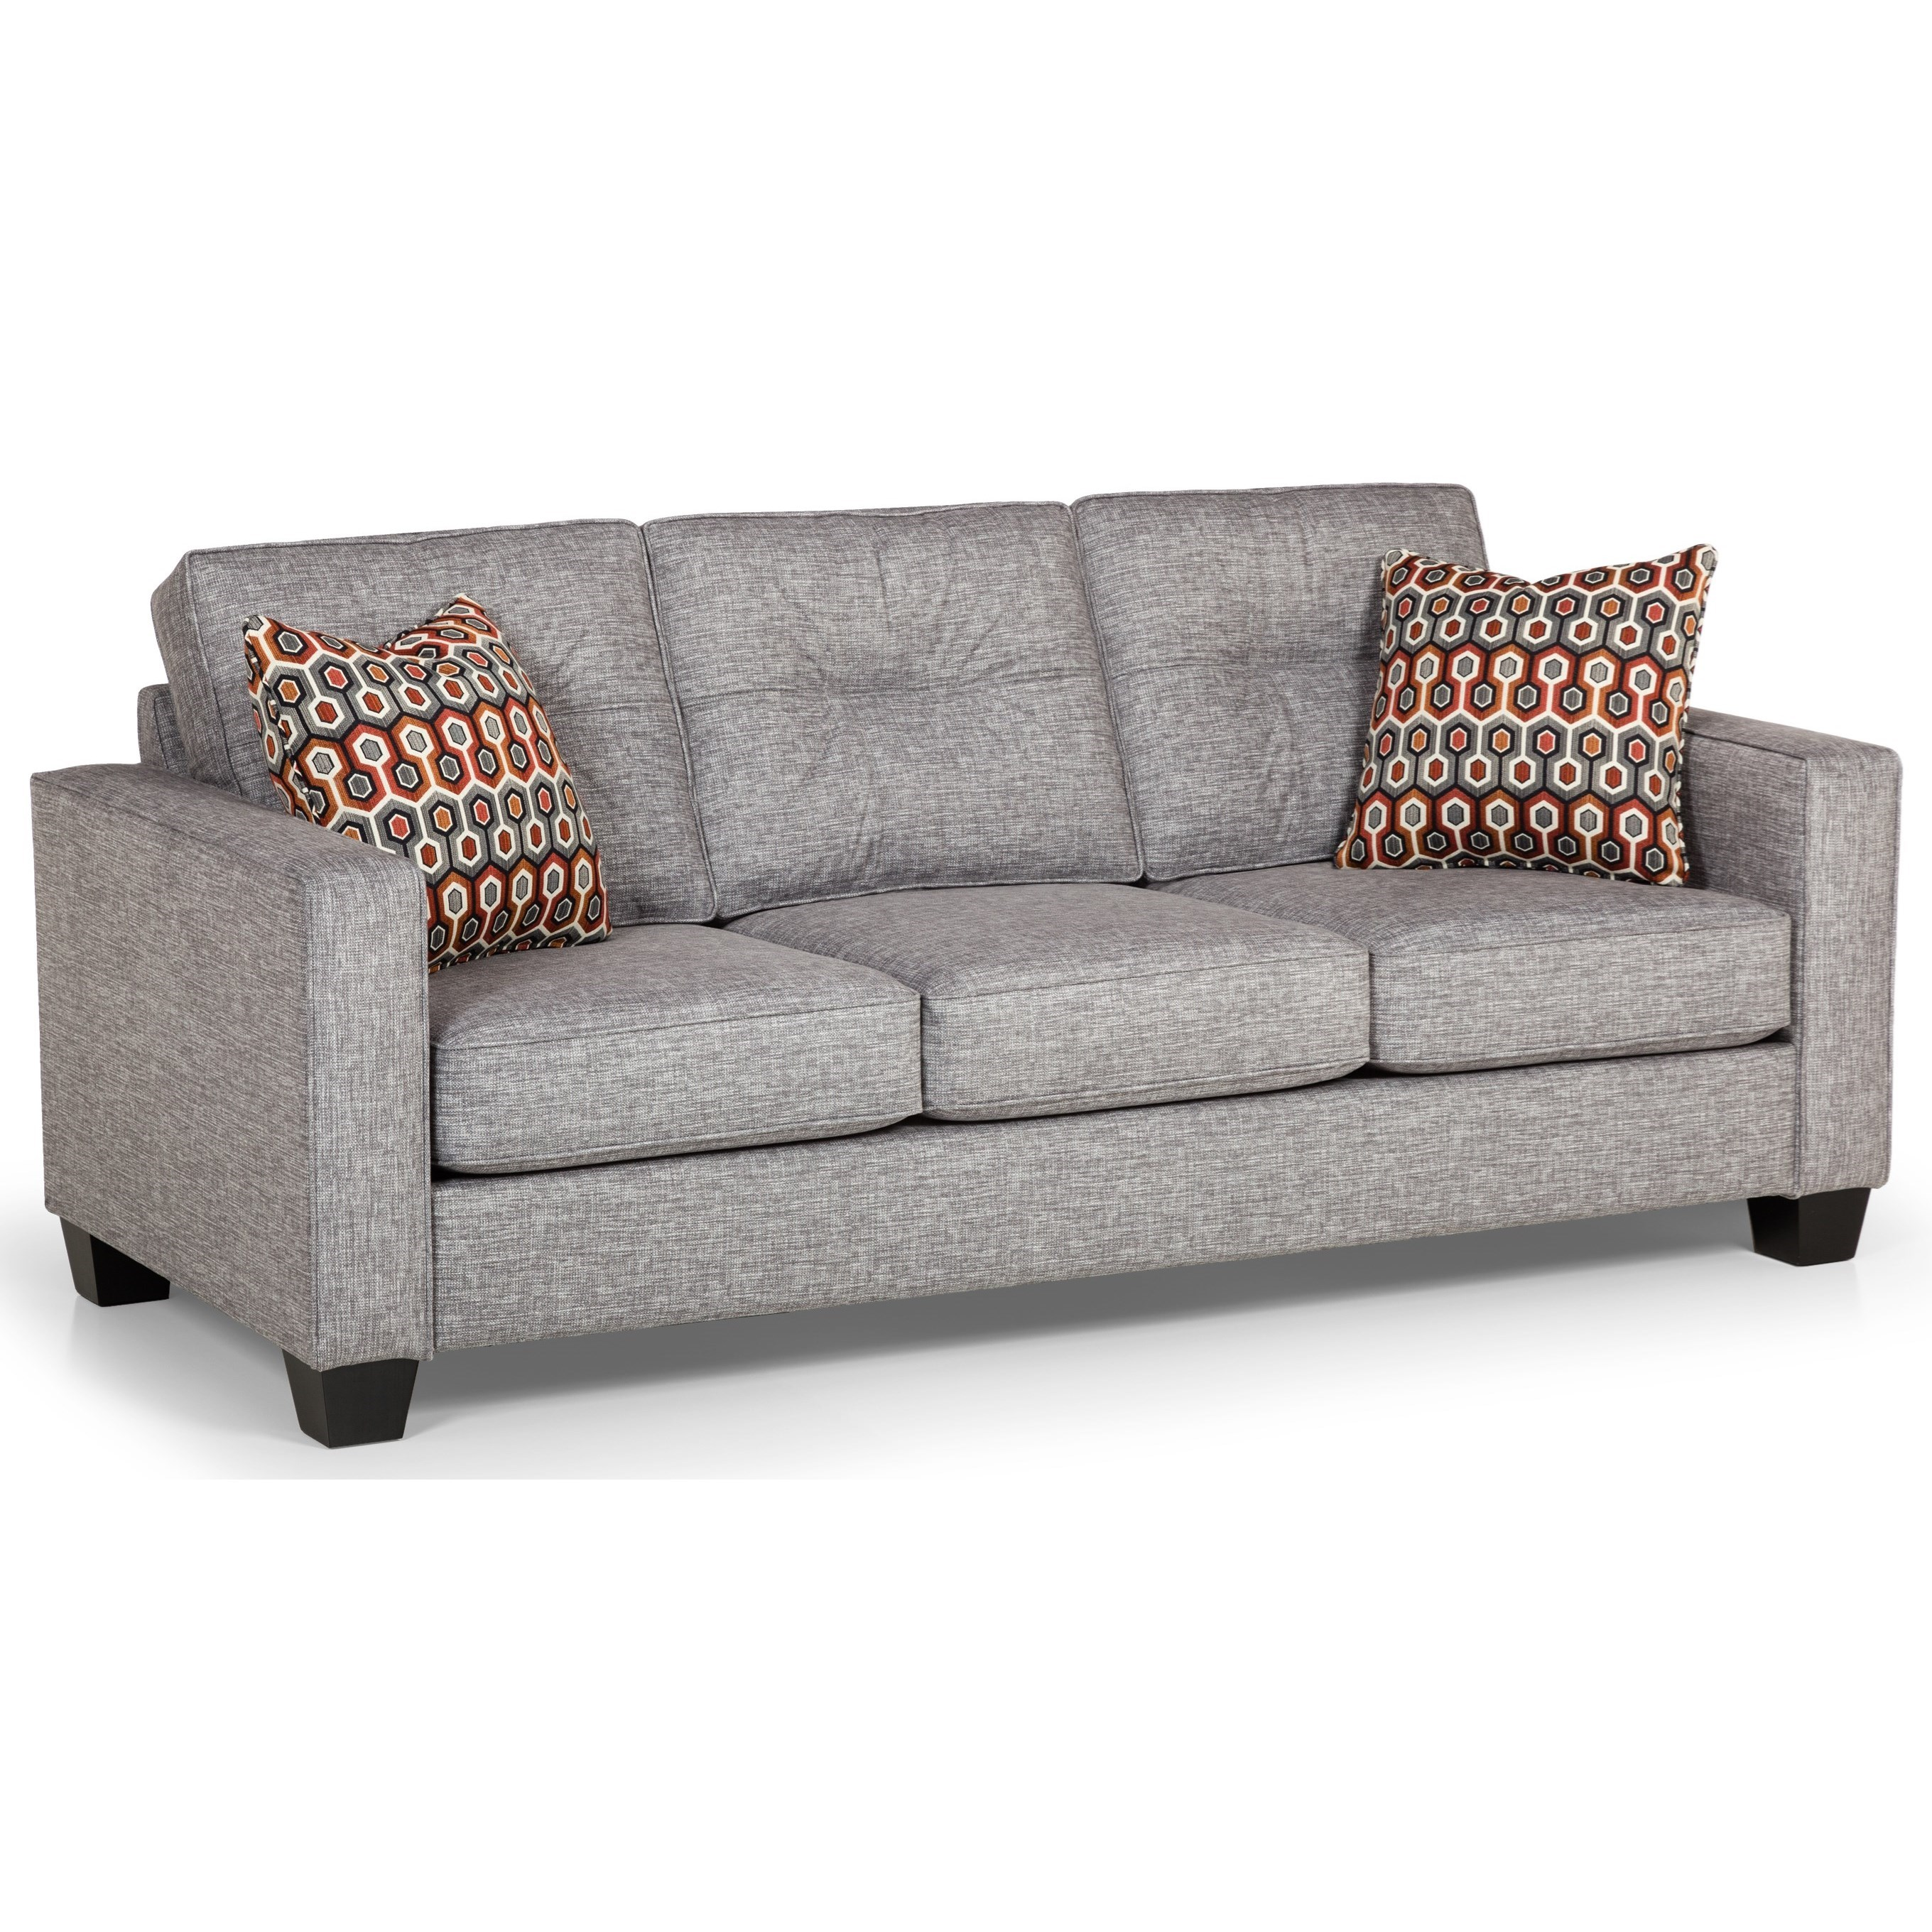 448 Sofa by Stanton at Wilson's Furniture